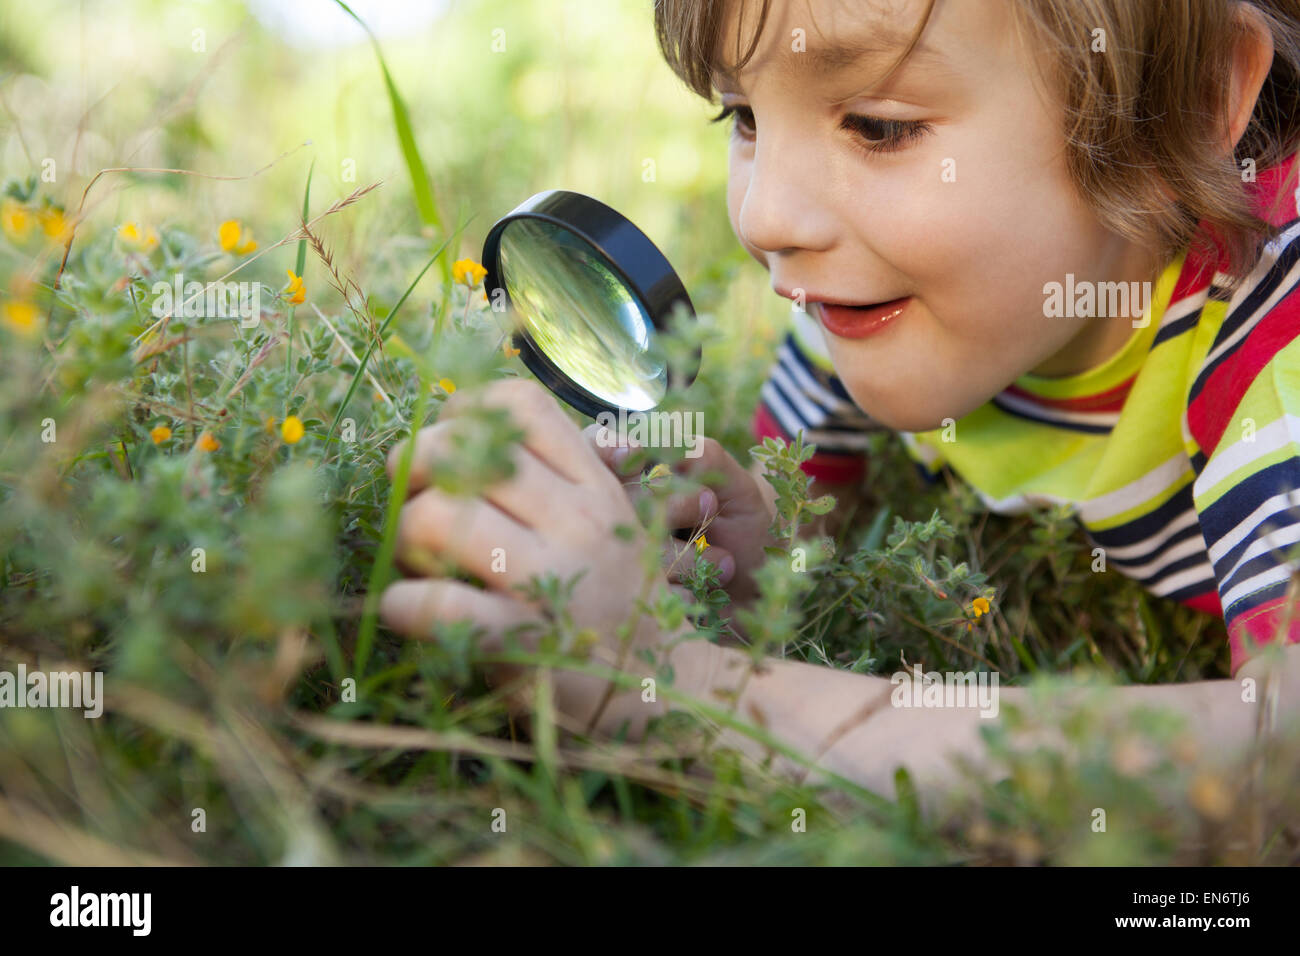 Happy little boy looking through magnifying glass Photo Stock